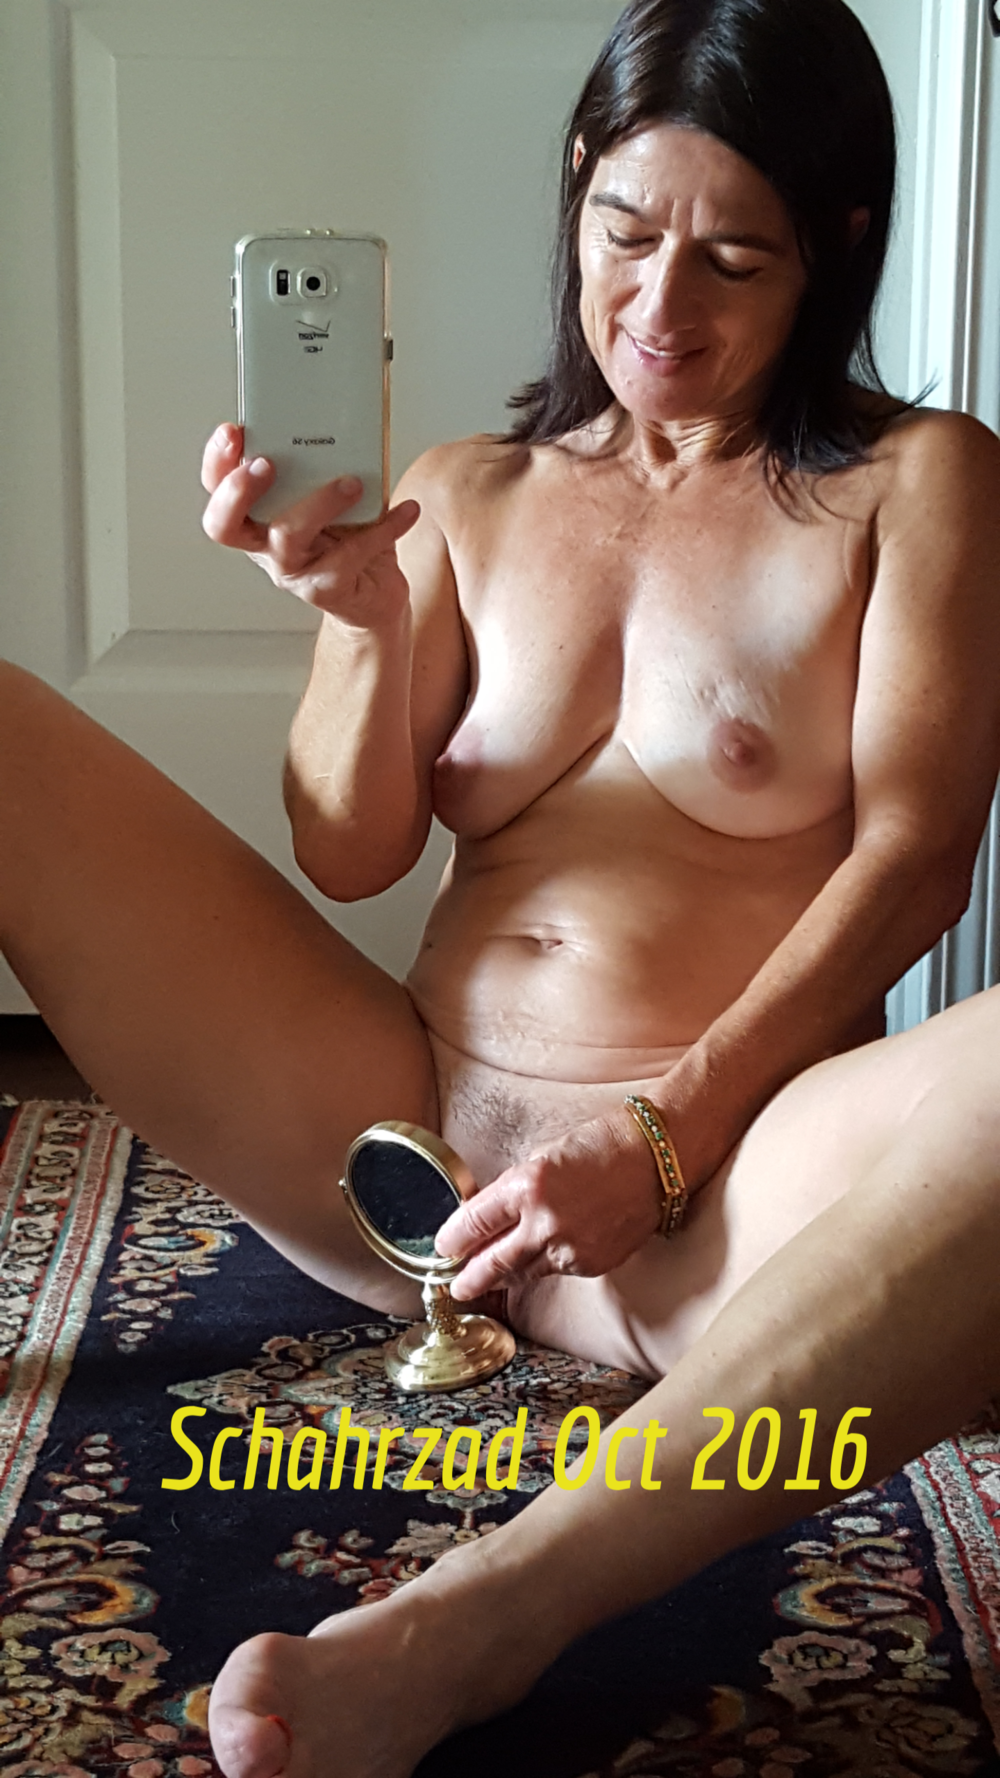 nude on persian rug w mirror.png